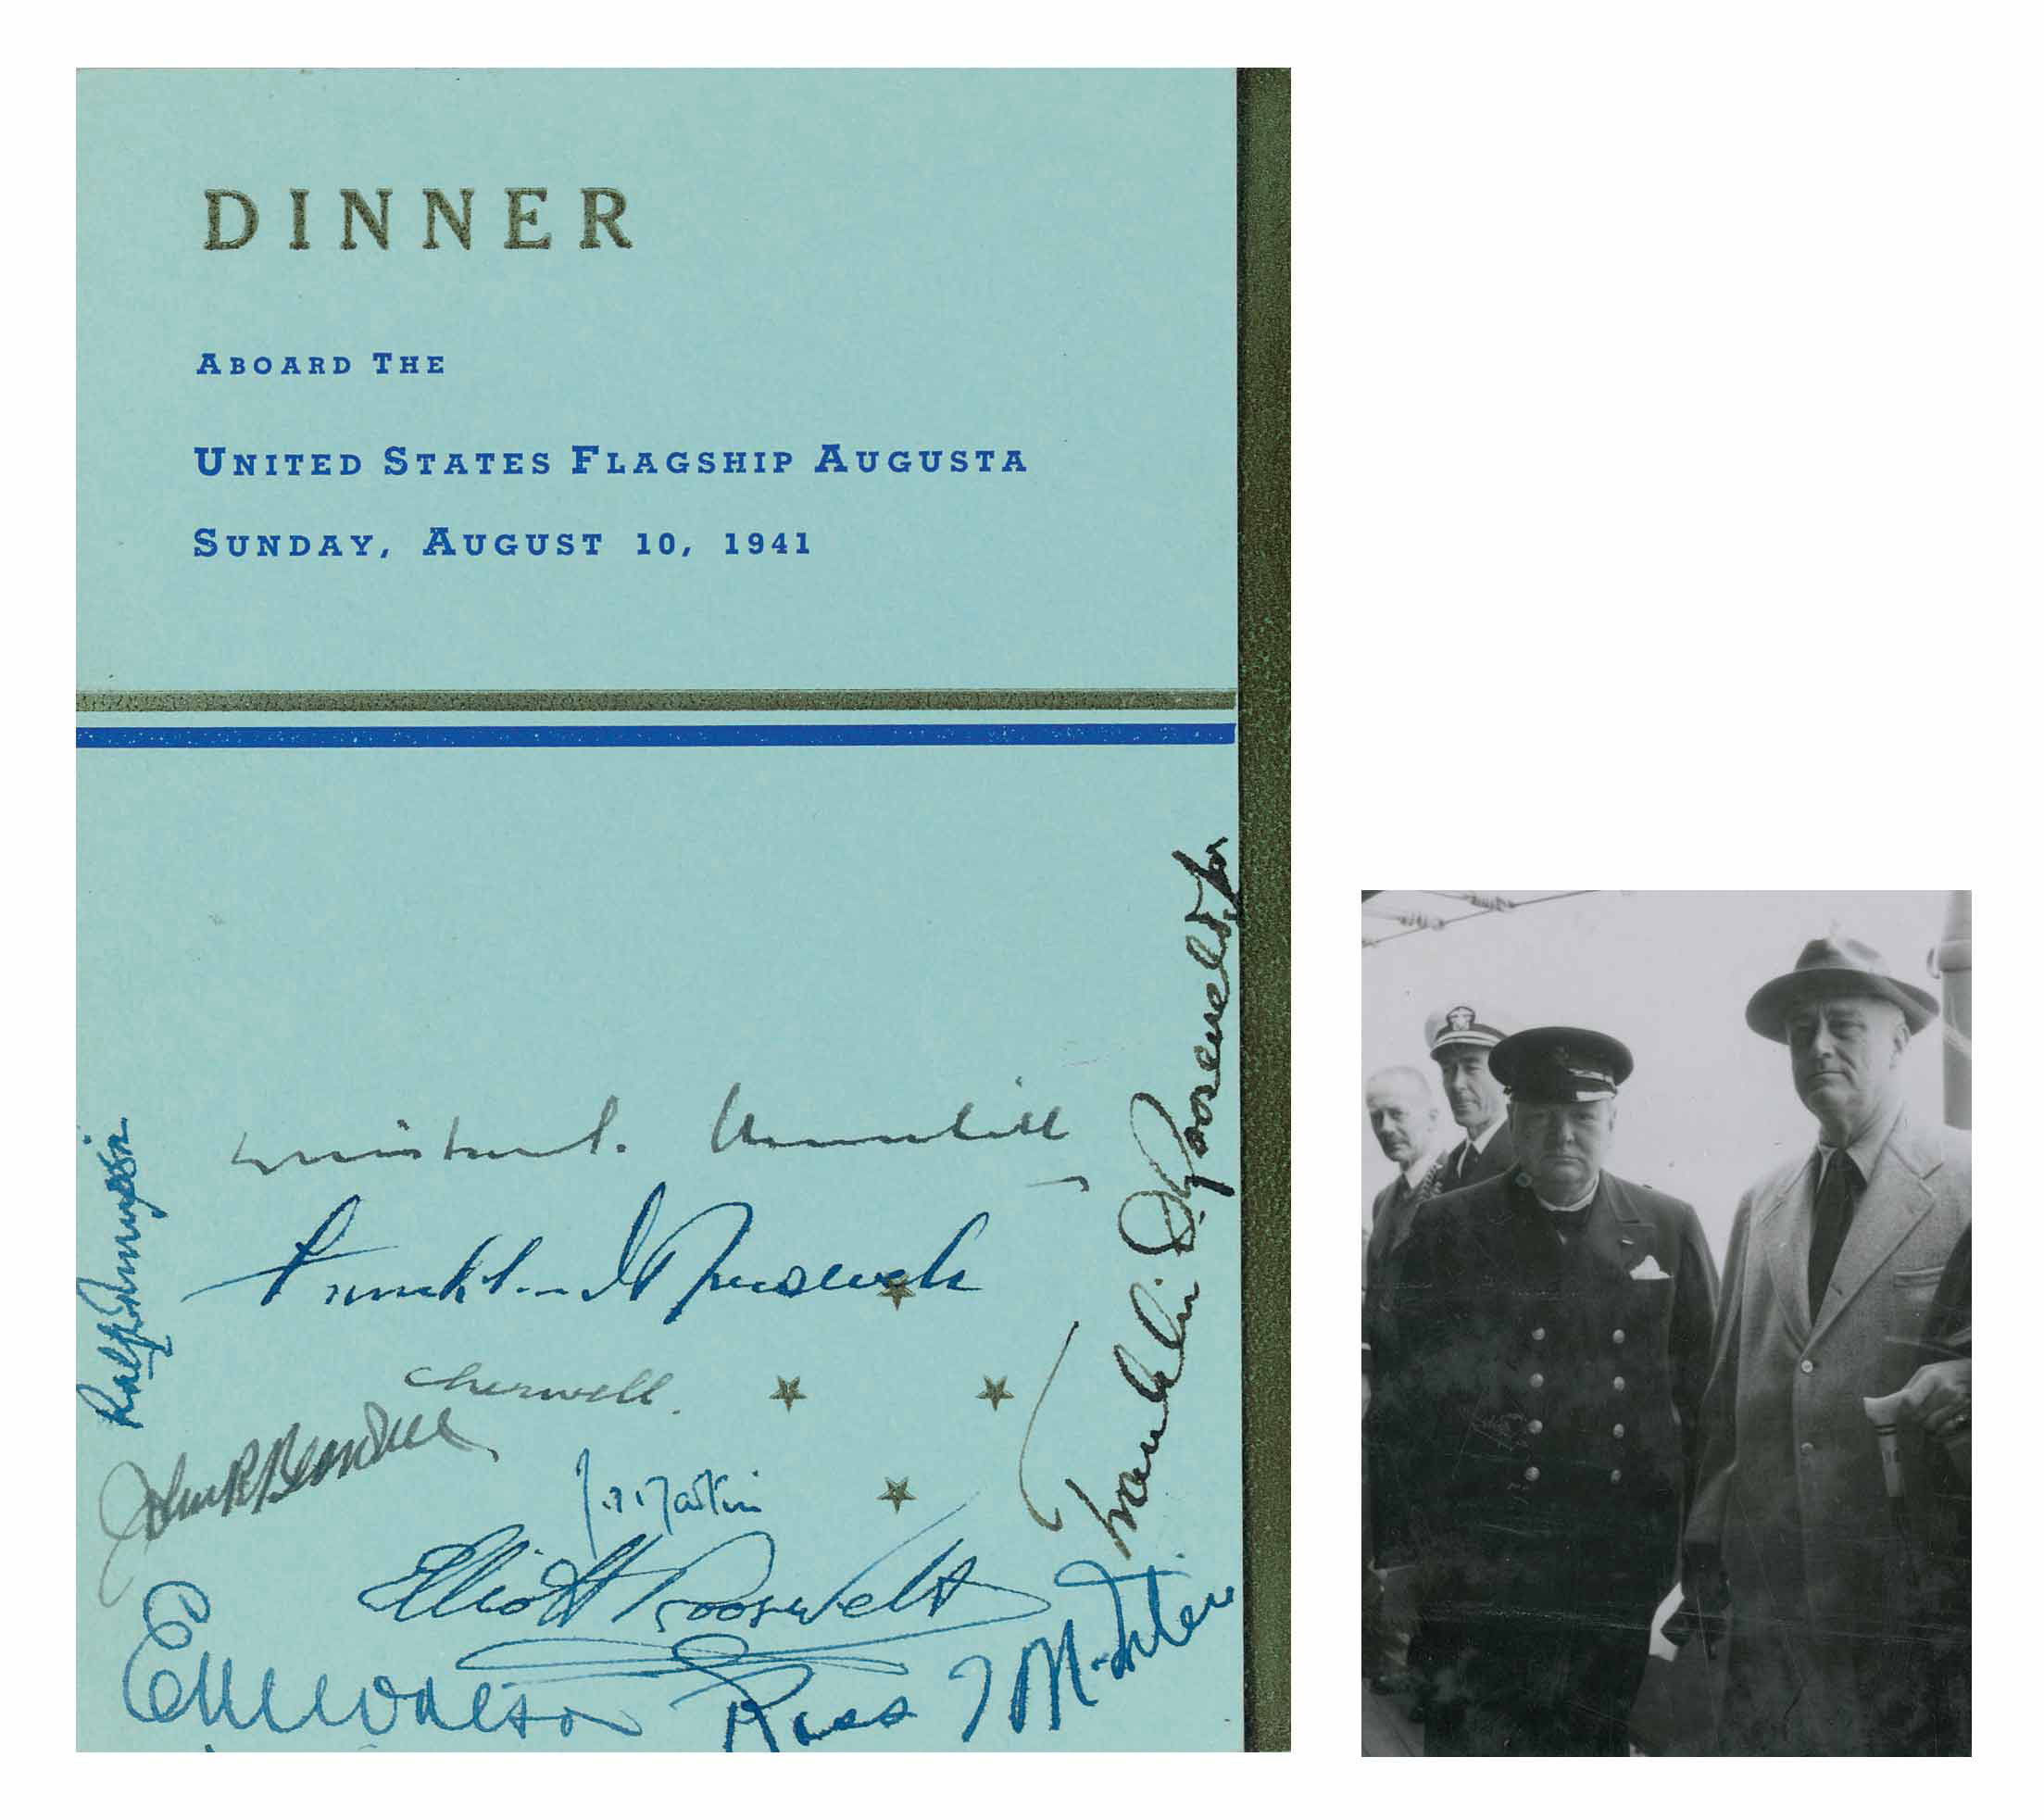 "CHURCHILL, Winston S. and ROOSEVELT, Franklin D. Printed menu signed (""Winston S. Churchill""), as Prime Minister and (""Franklin D. Roosevelt""), as President, ABOARD THE U.S. FLAGSHIP AUGUSTA, 10 August 1941. Also signed by eight others. 4 pages, 12mo (7 x 5 1/8in.), printed in blue and gilt lettering."